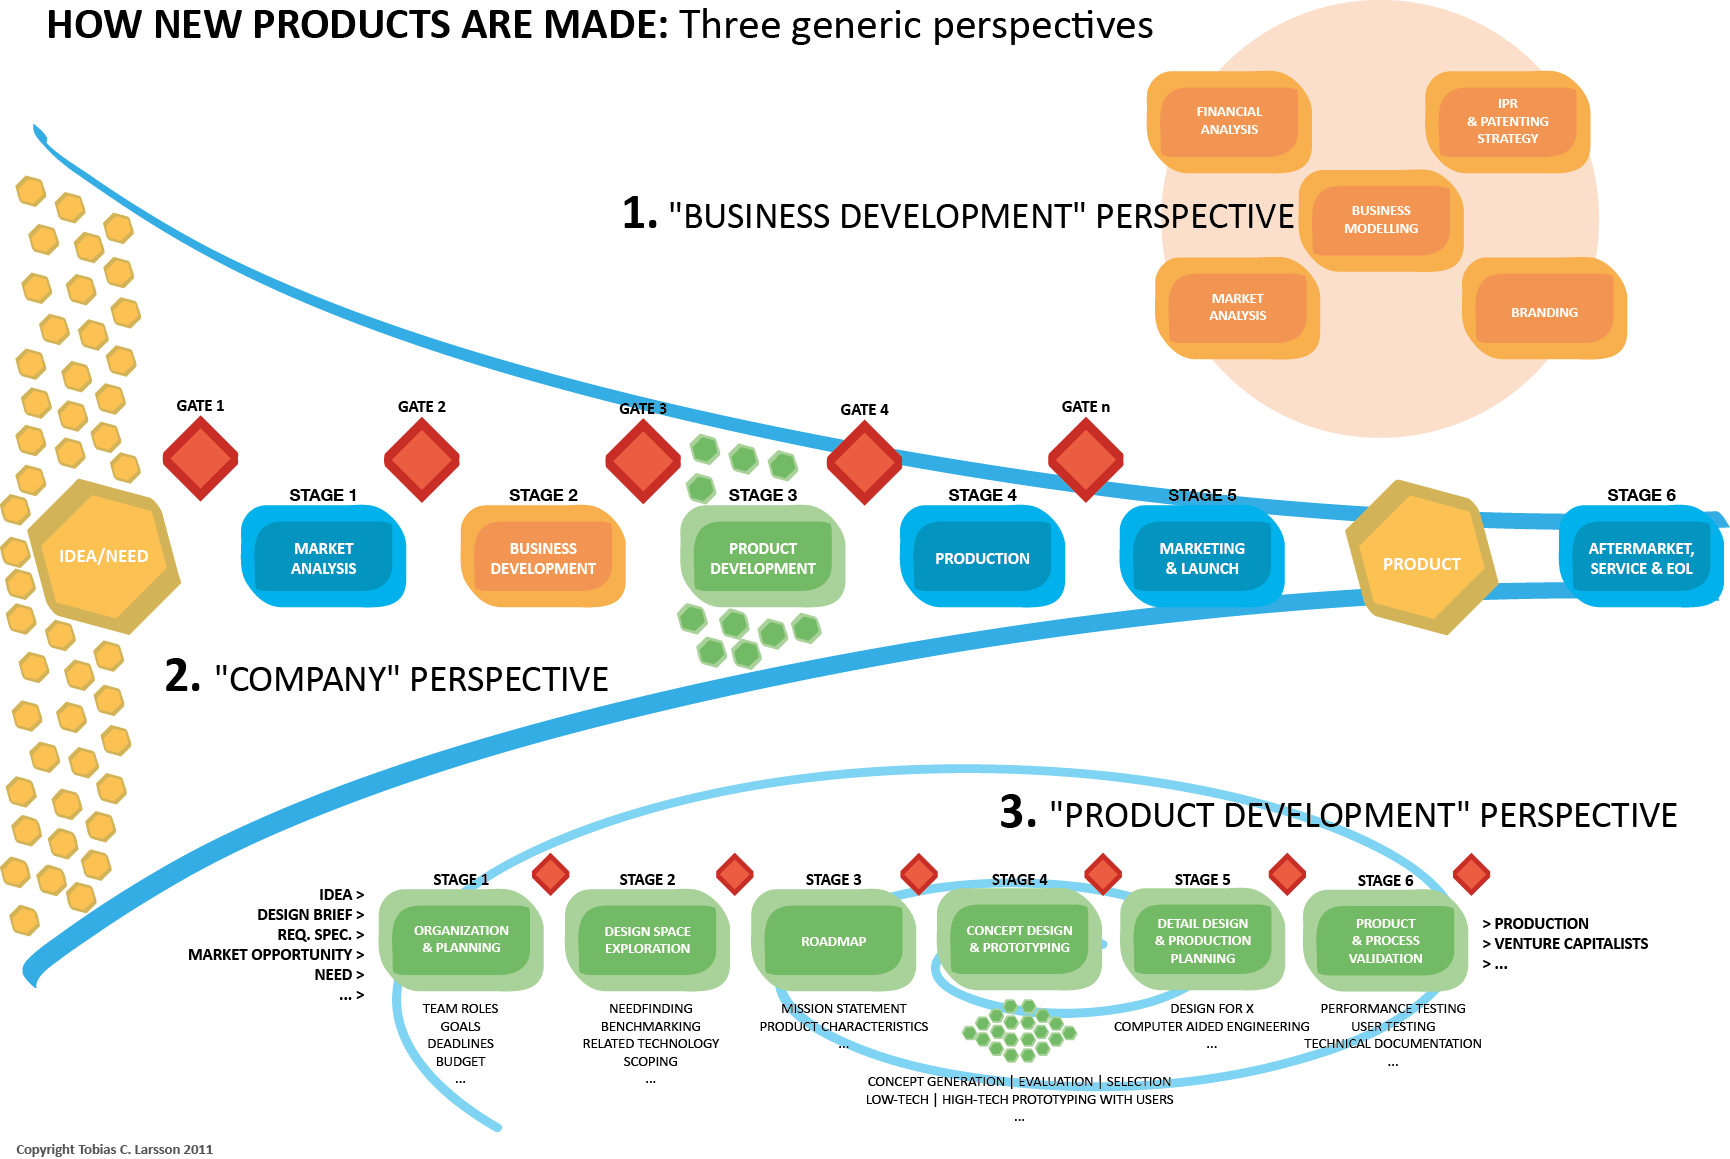 Whitepaper aberdeen report integrating the plm for Product development services